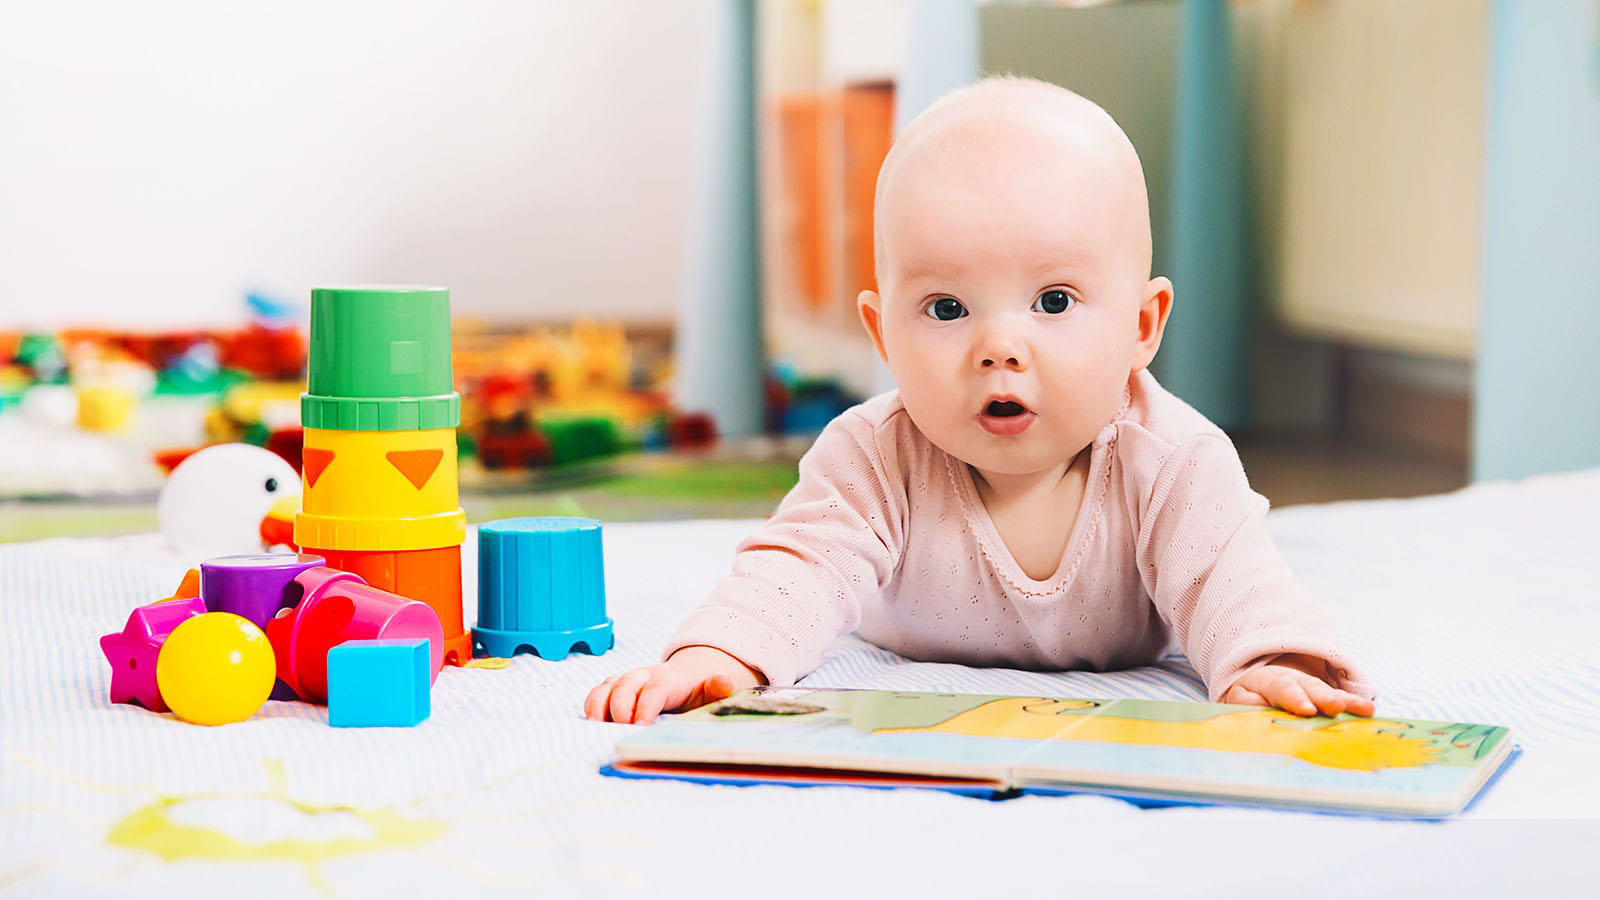 Young children who misbehave, cry and too often get mad can feel taxing.